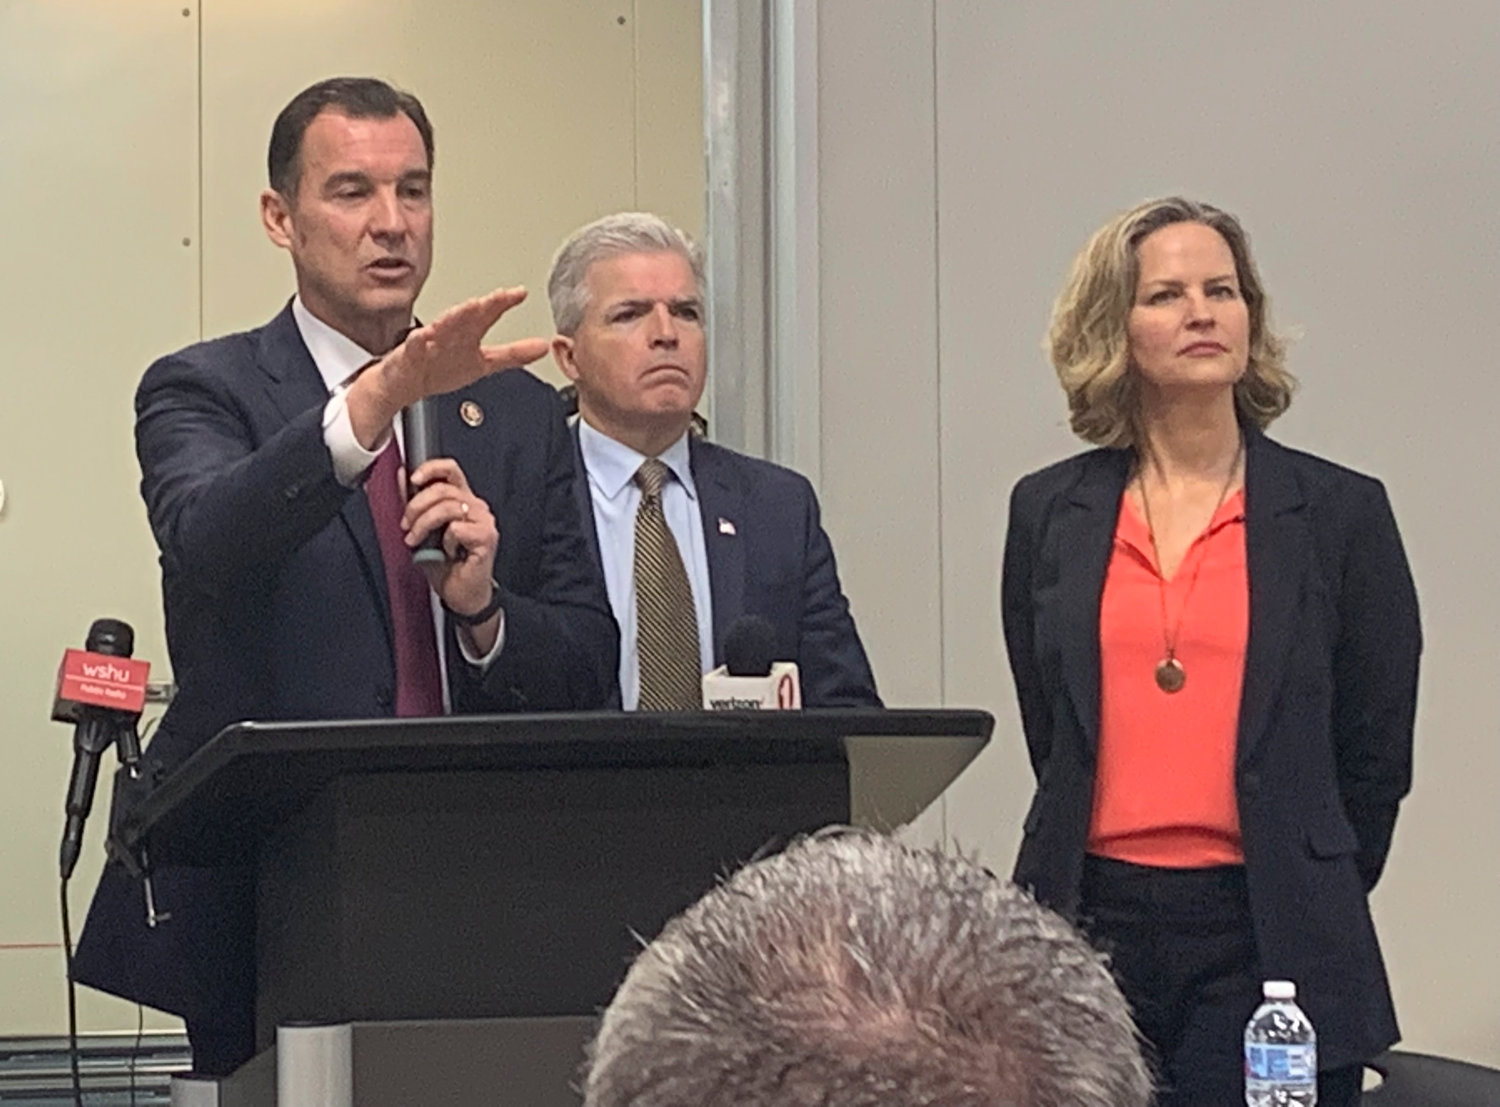 U.S. Rep. Tom Suozzi, left, Suffolk County Executive Steve Bellone and Nassau County Executive Laura Curran introduced a program to streamline job training and apprenticeship resources on Long Island.